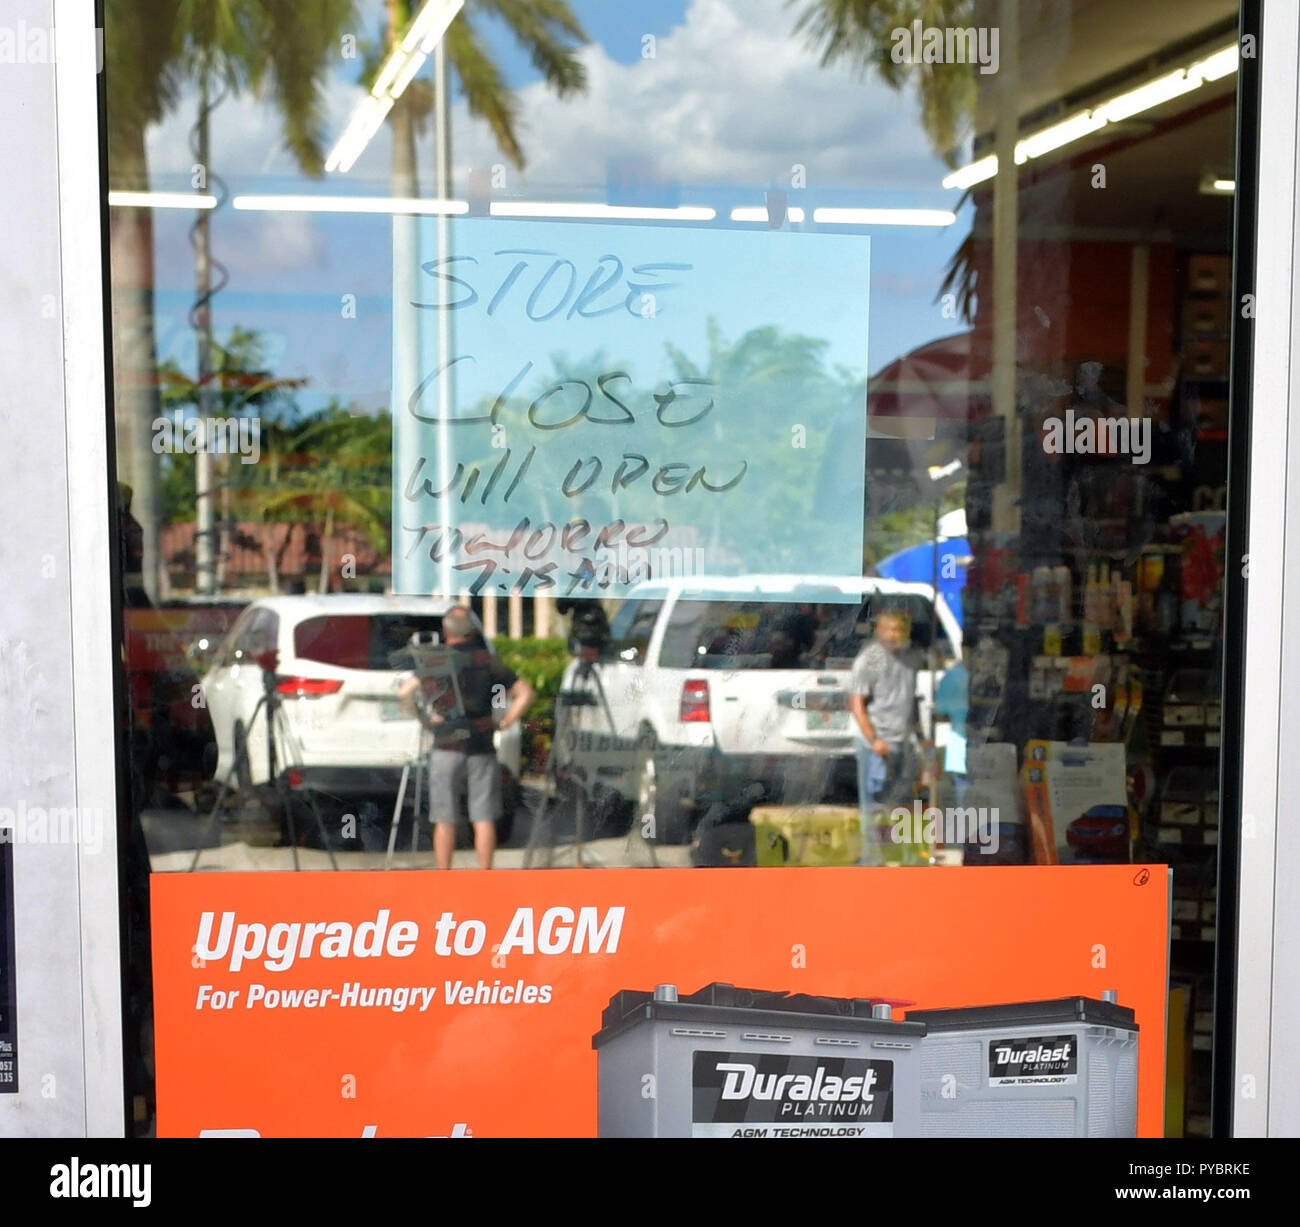 Florida, USA. 26th Oct, 2018. NO NEW YORK PAPERS  PLANTATION, FL - OCTOBER 26: The AutoZone at 801 S. State Road 7 is seen where Cesar Sayoc, a 56-year-old man from Aventura, Florida was arrested in the possible connection with pipe bombs being mailed to critics of President Donald Trump on October 26, 2018 in Plantation, Florida. The pipe bomb devices have been recovered in New York, Washington D.C., California and South Florida, all with the return address of Debbie Wasserman-Schultz's office.   People:  AutoZone Credit: Storms Media Group/Alamy Live News - Stock Image